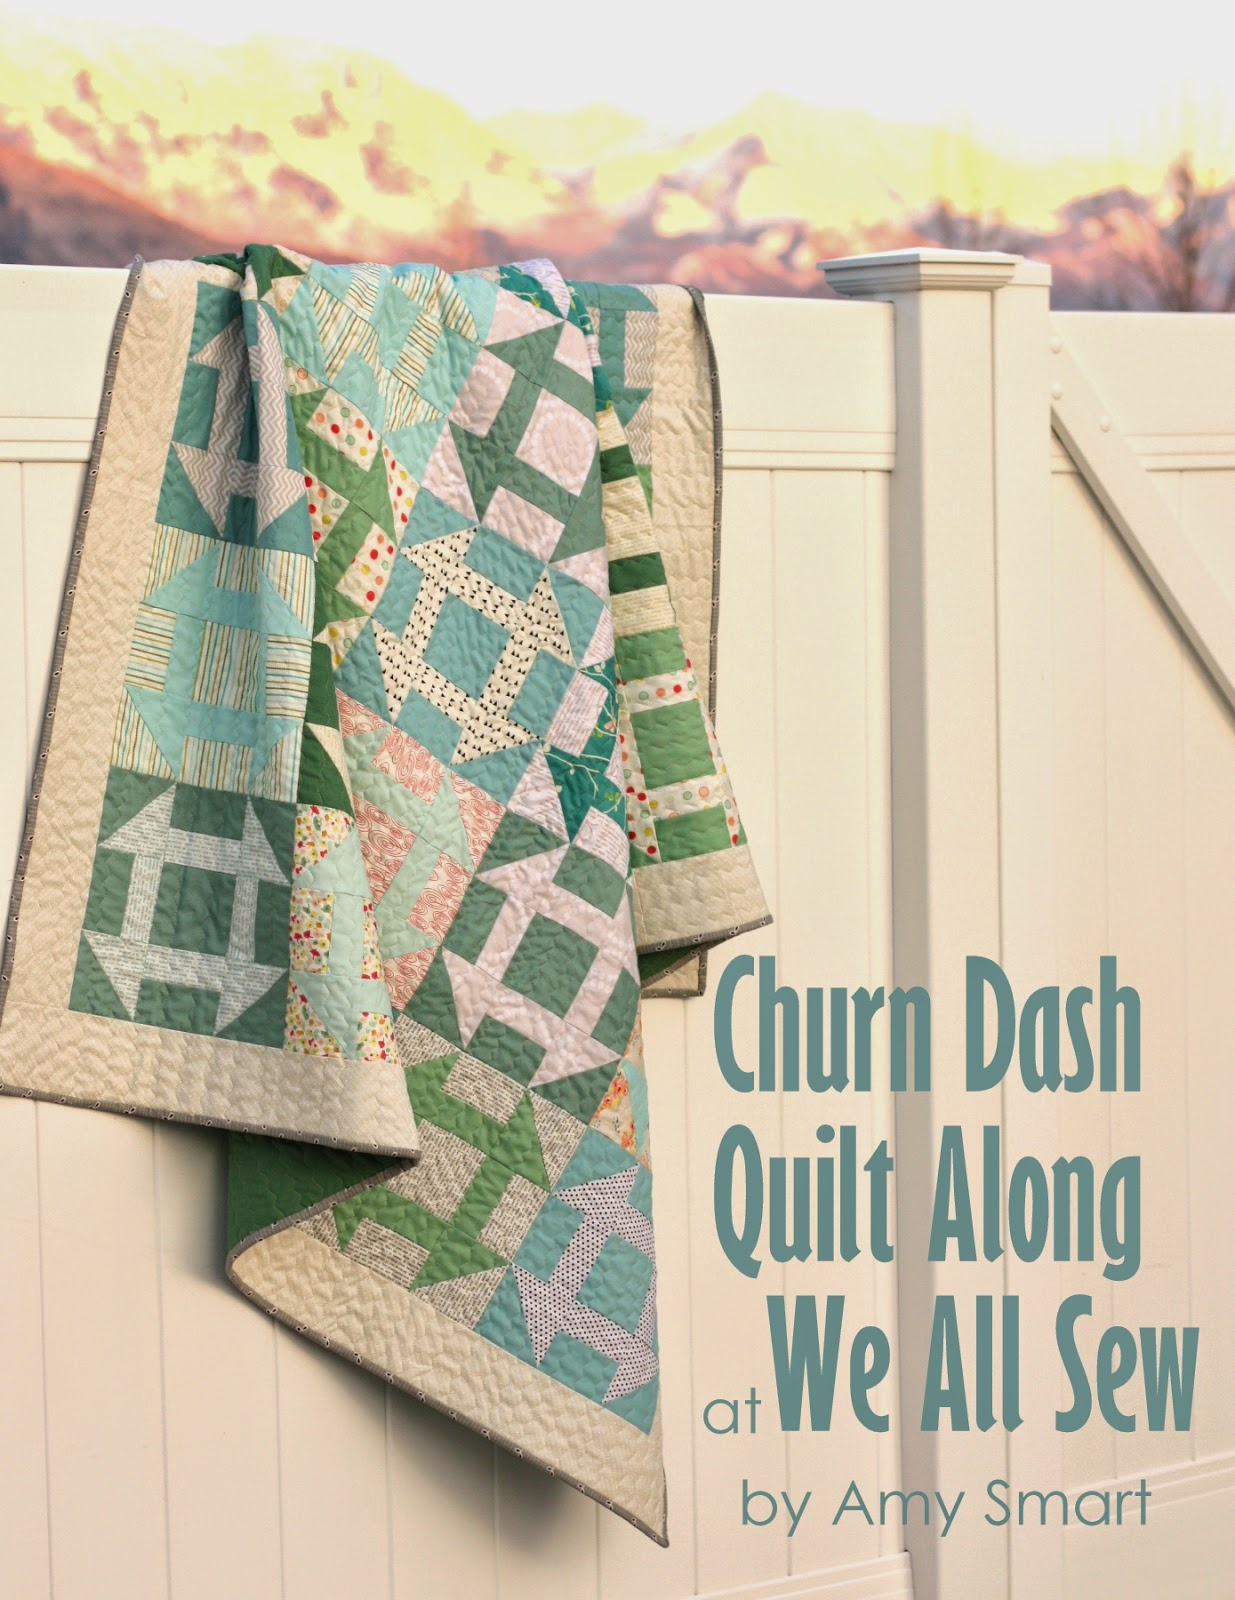 I'm hosting a Free Fast Churn Dash Quilt Along!